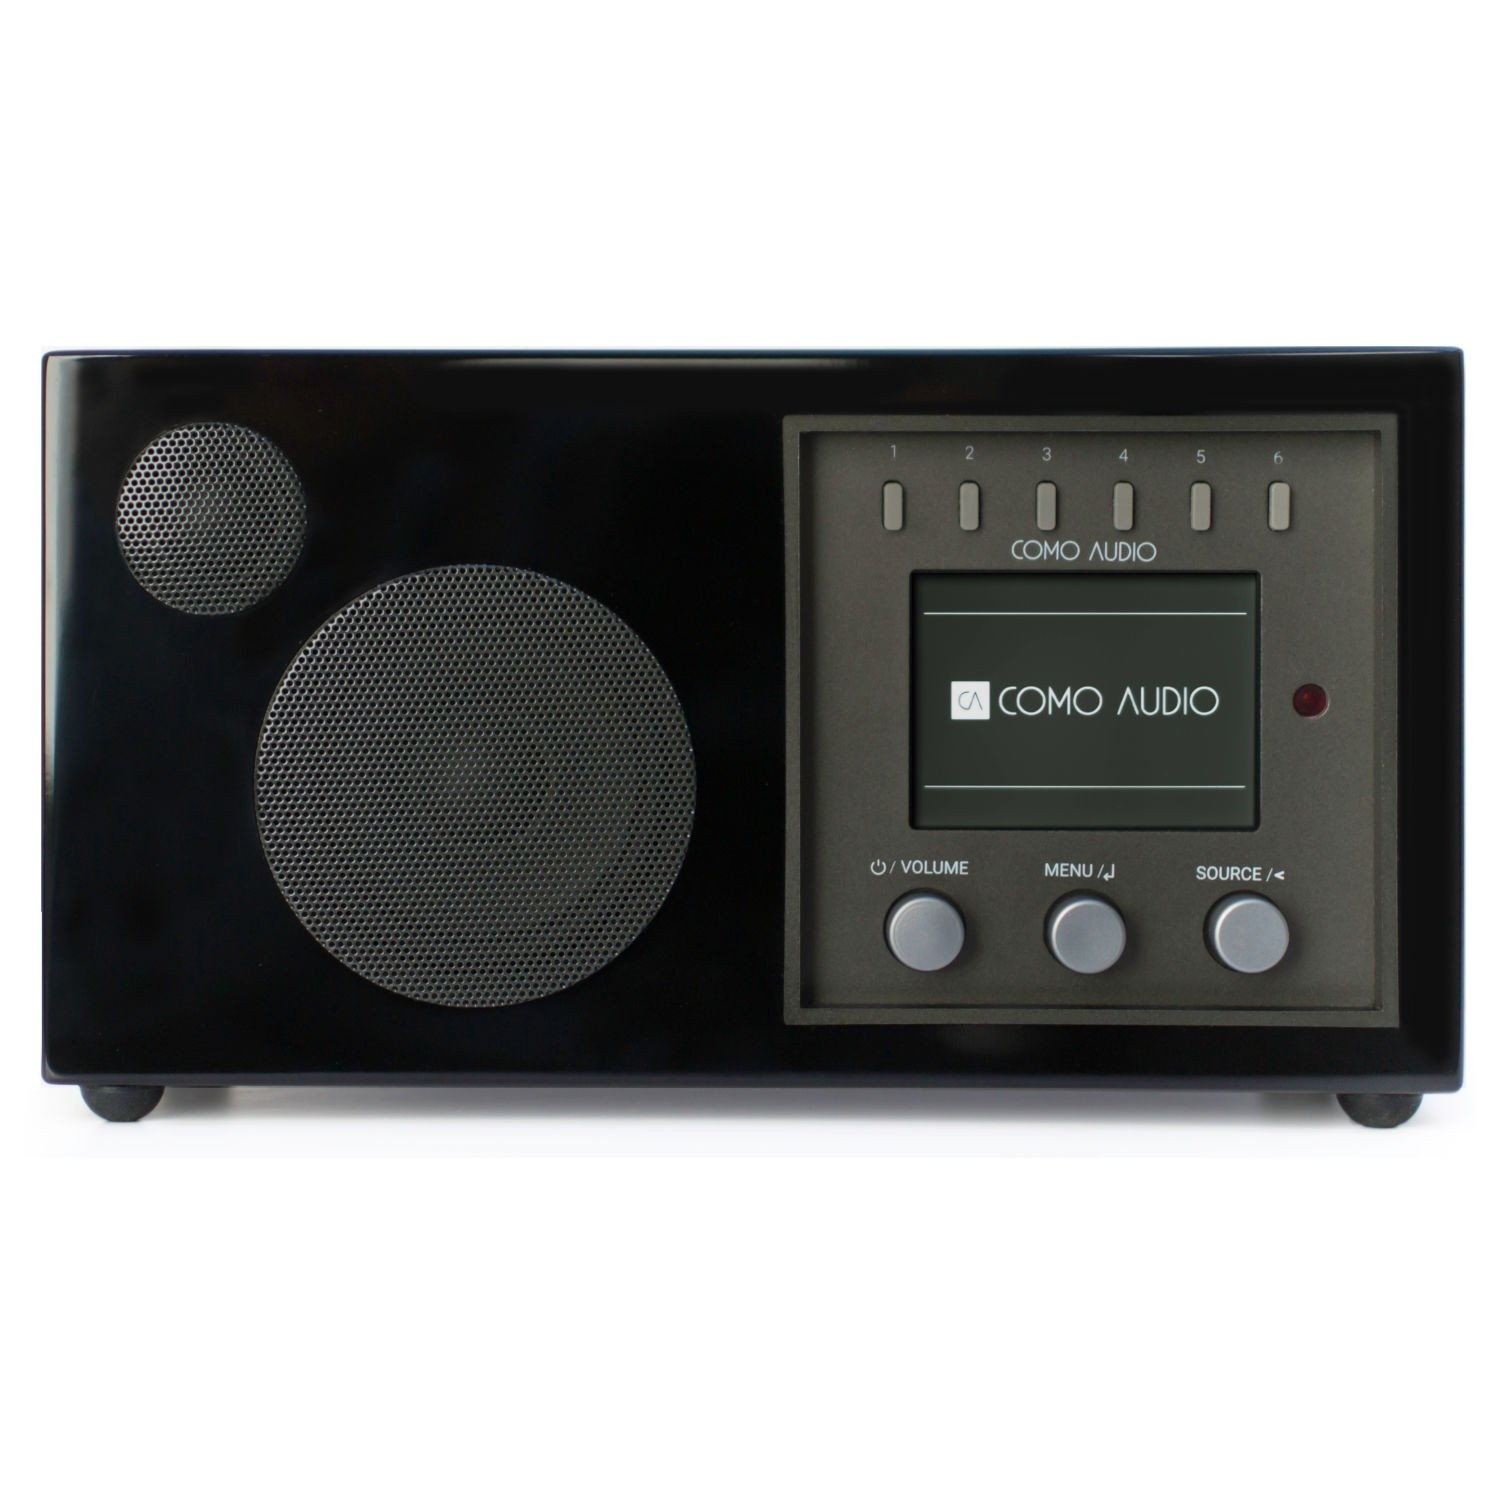 Como Audio Como Audio Solo - Streaming - DAB+ en internetradio - Zwart